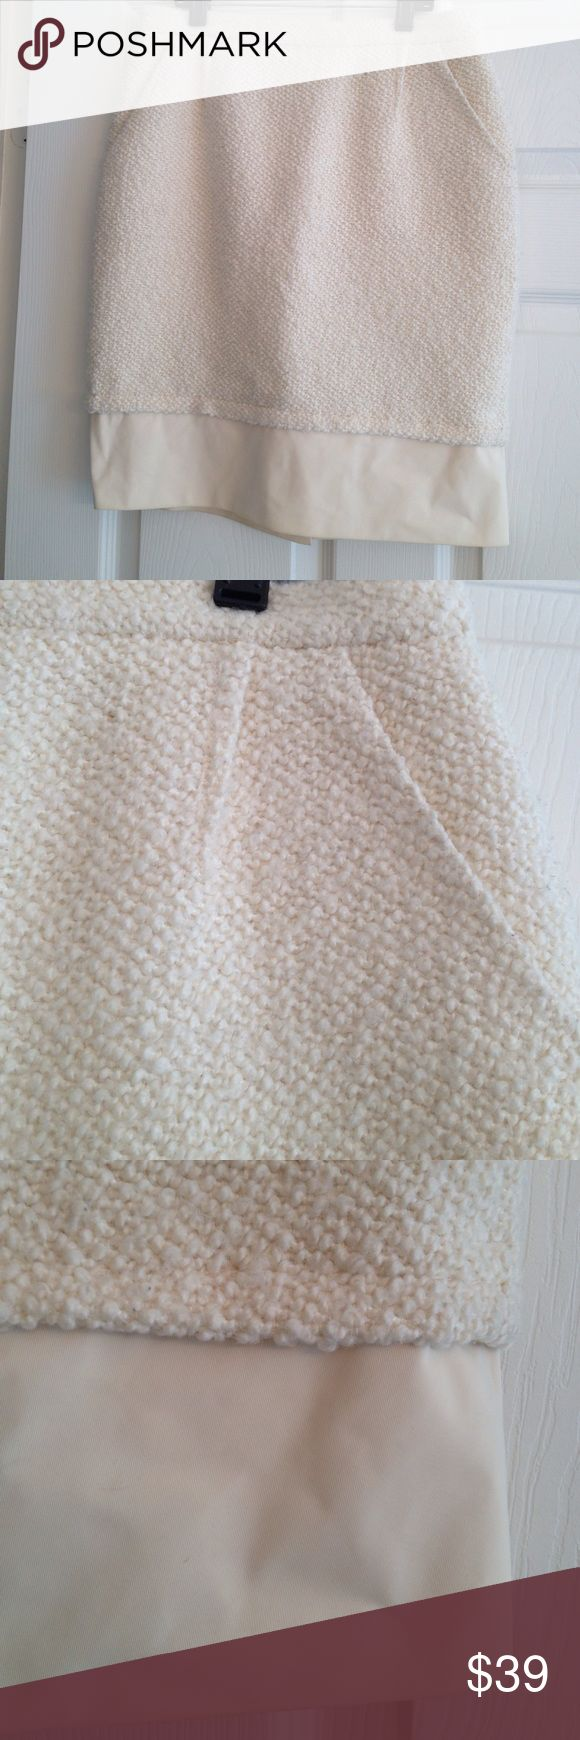 BCBG MAXAZRIA BOUCLE SKIRT😍 I adore this shade of Ivory. It has a hint of butter yellow in it! ;) Fantastic Wool blend Boucle .. Fully lined.. Built-in girly shape and a hemline that is a Great butter real colour in a heavy acrylic with just a hint of texture that my camera does not capture. In great condition. BCBGMaxAzria Skirts Pencil